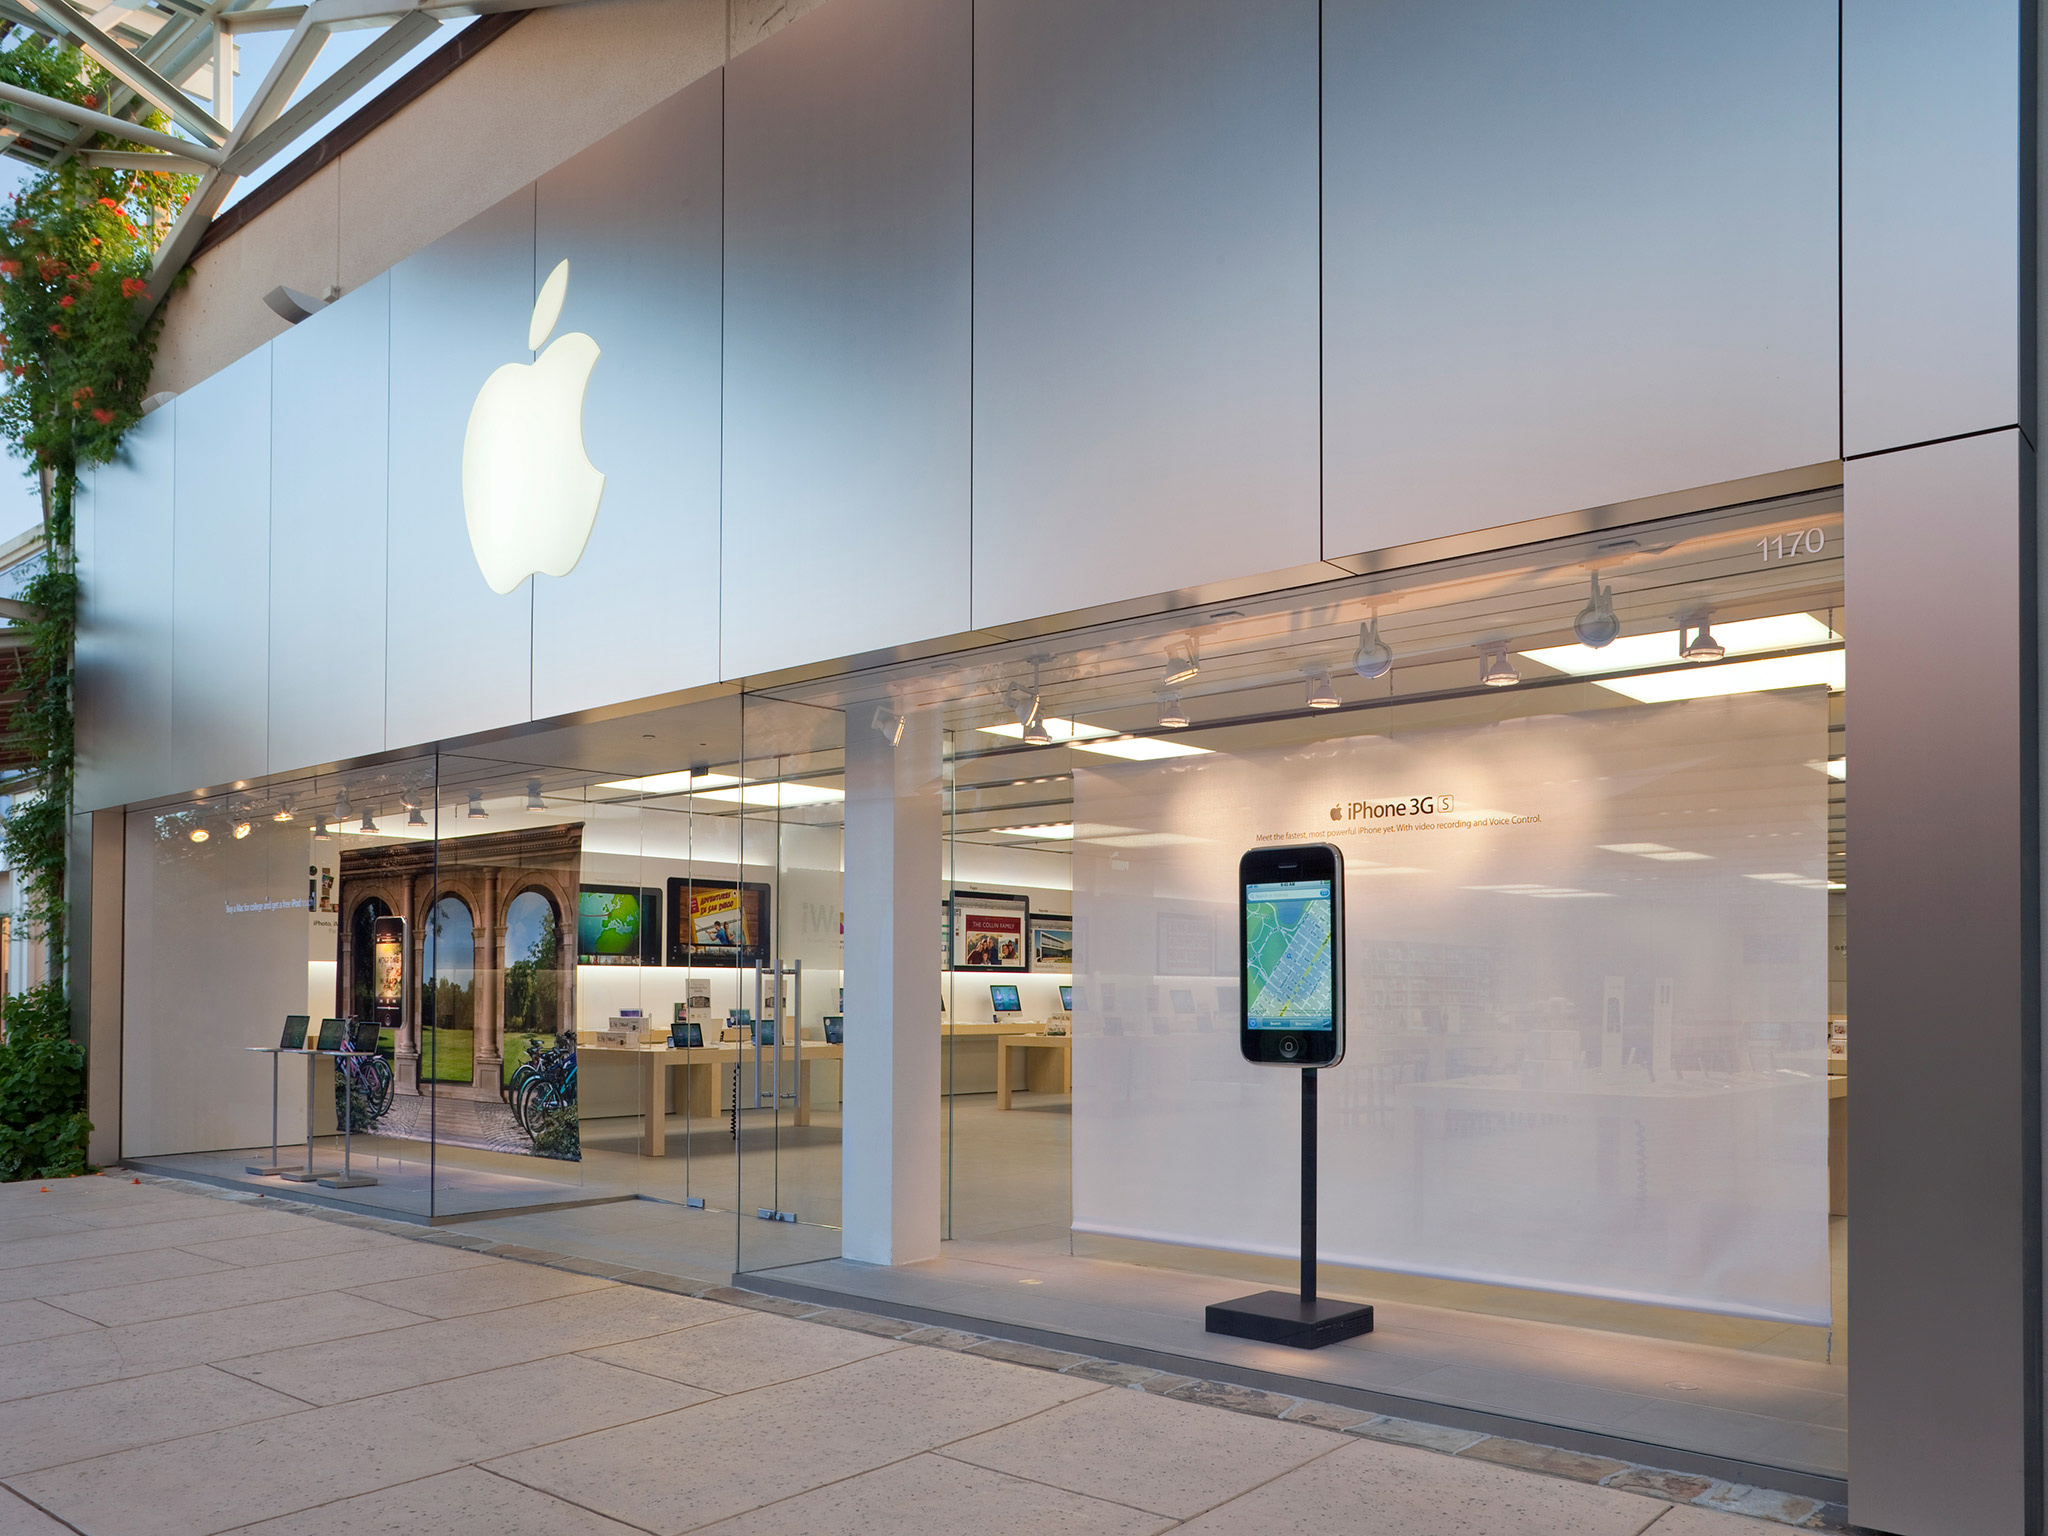 Apple La Cantera In San Antonio TX Whitepages